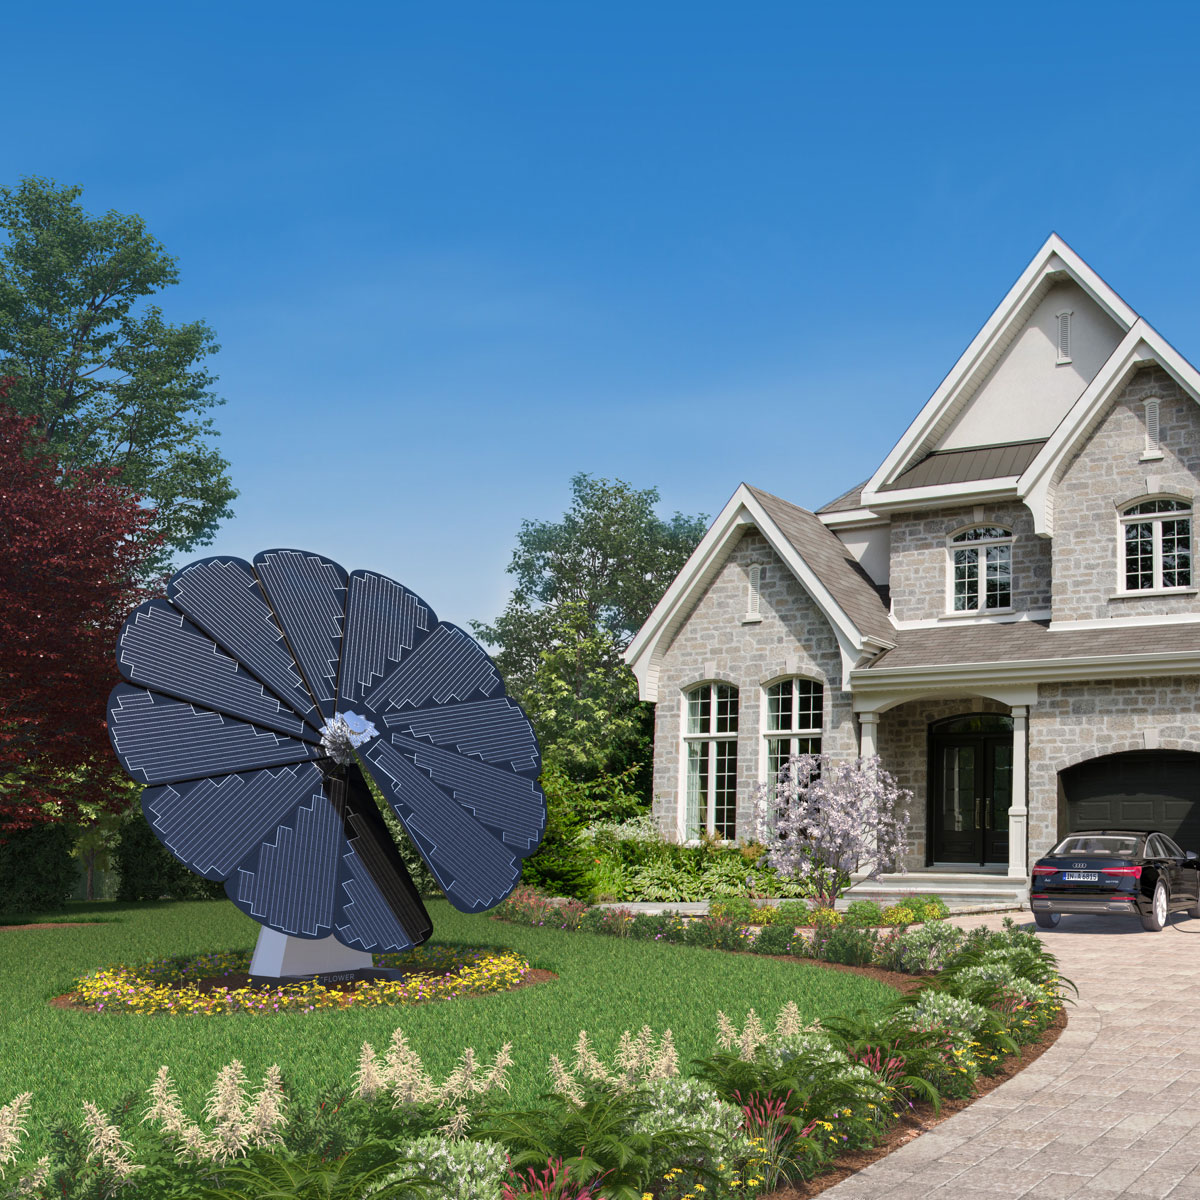 SmartFlower on the Lawn of a Two-Story Family Home